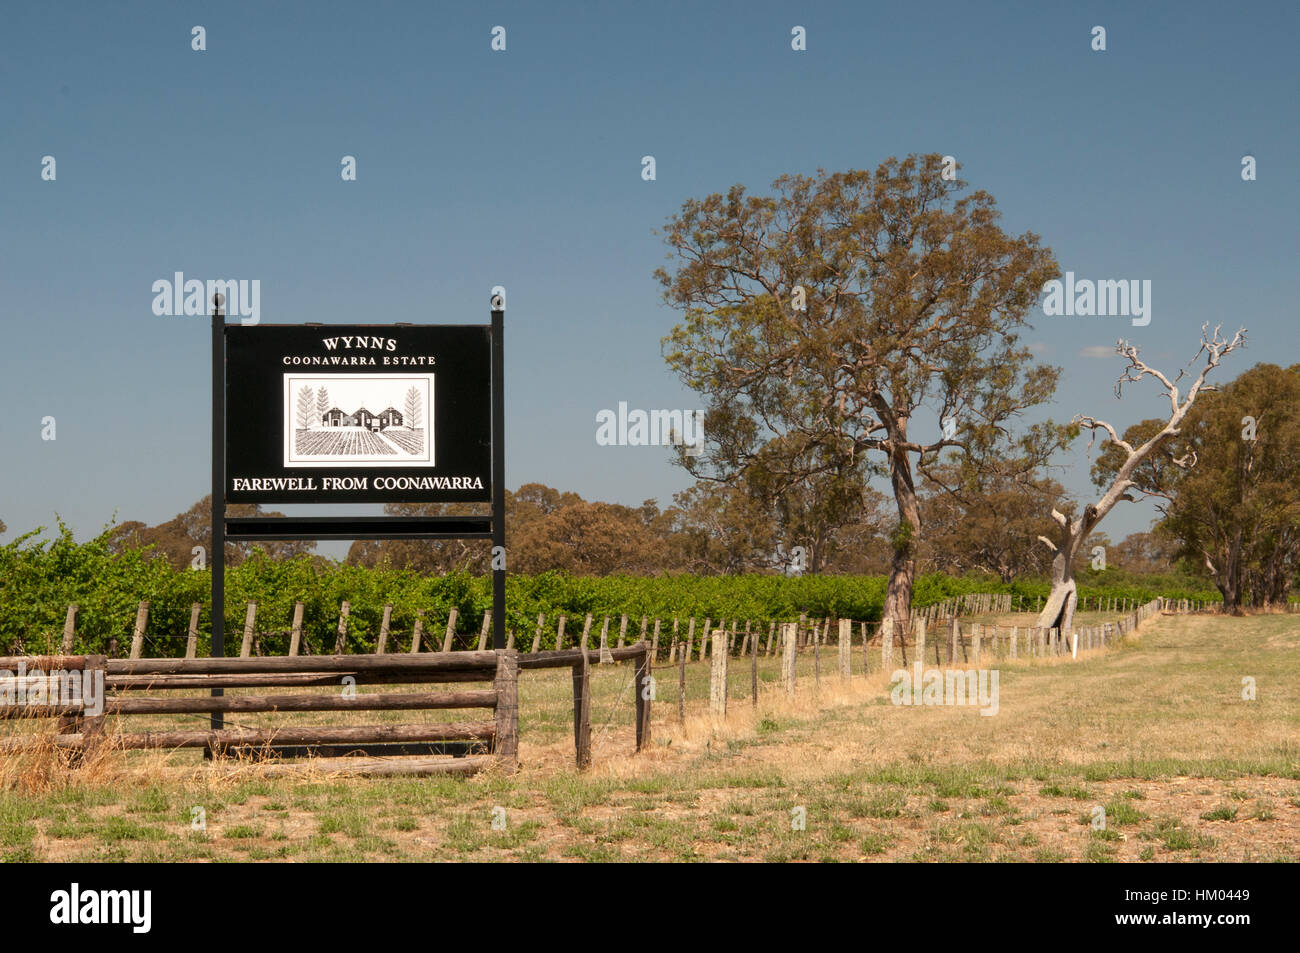 Wynns Coonawarra Estate vineyards sign outside Penola, southeast South Australia - Stock Image